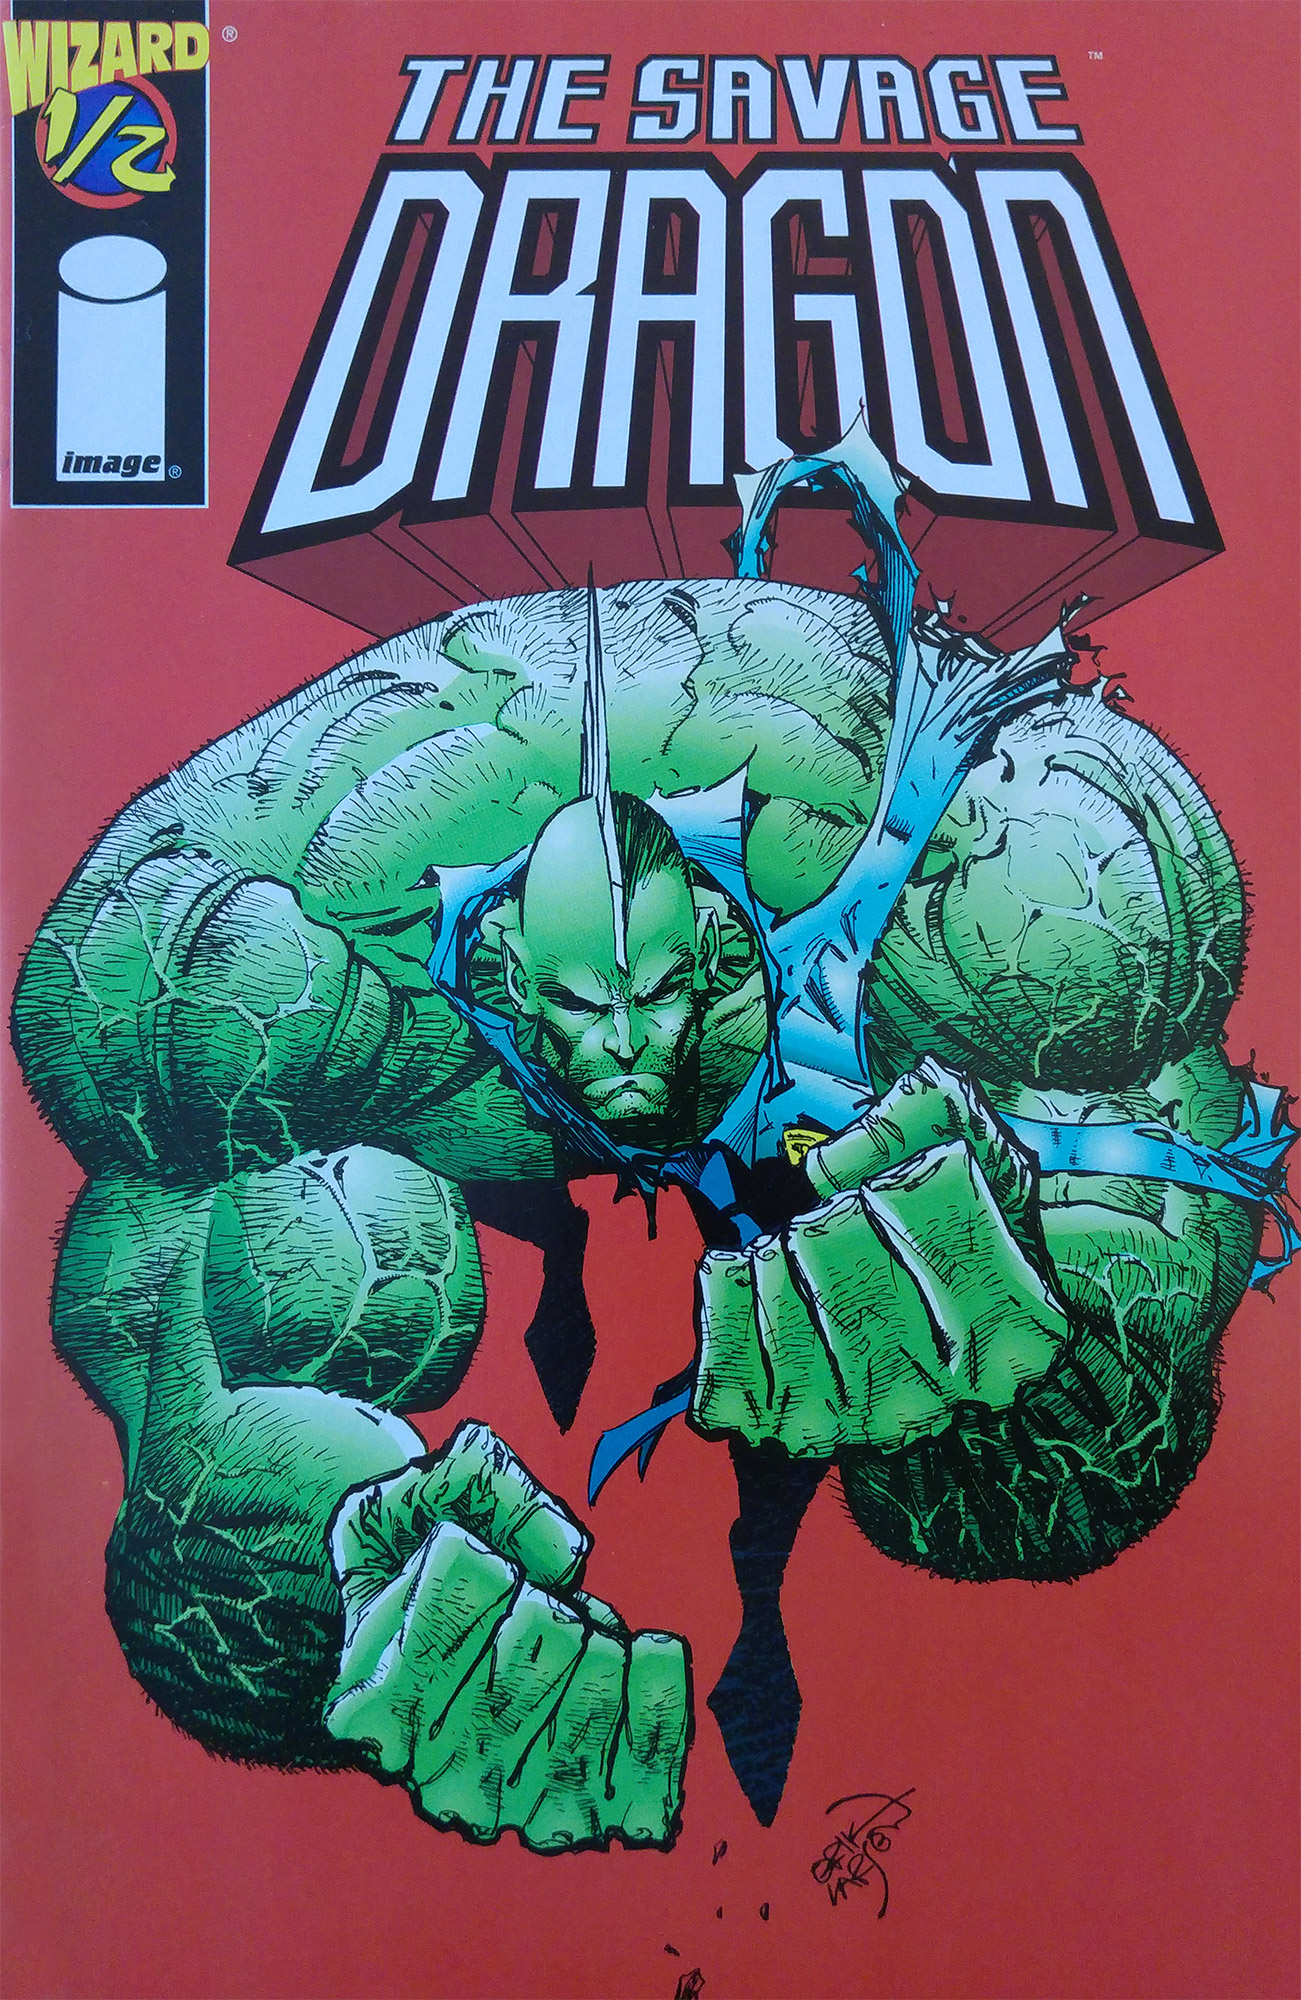 Cover Savage Dragon #½